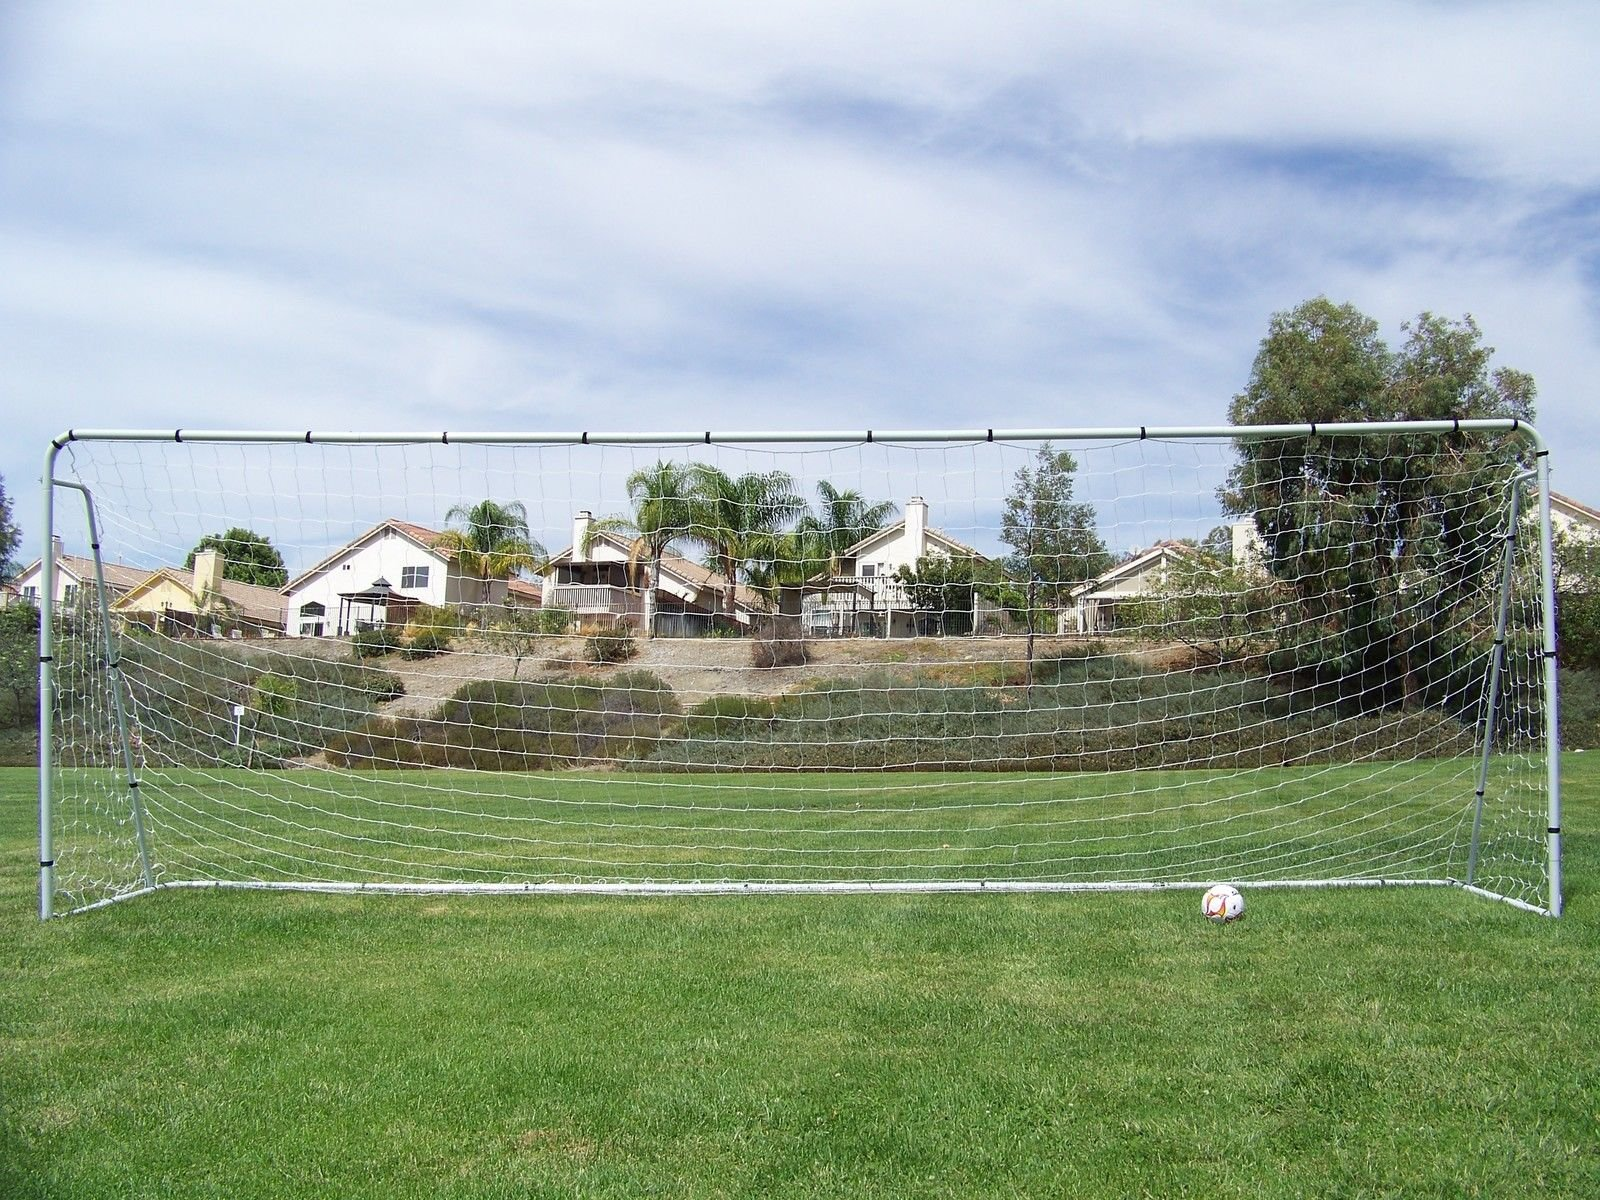 Official Size 18 x 7 x 5 Ft. Steel Soccer Goal. Heavy Duty Frame w/Net. Regulation League Size Goal. Professional Portable Practice Training Aid. 18 x 7, 18x7 Soccer Goal